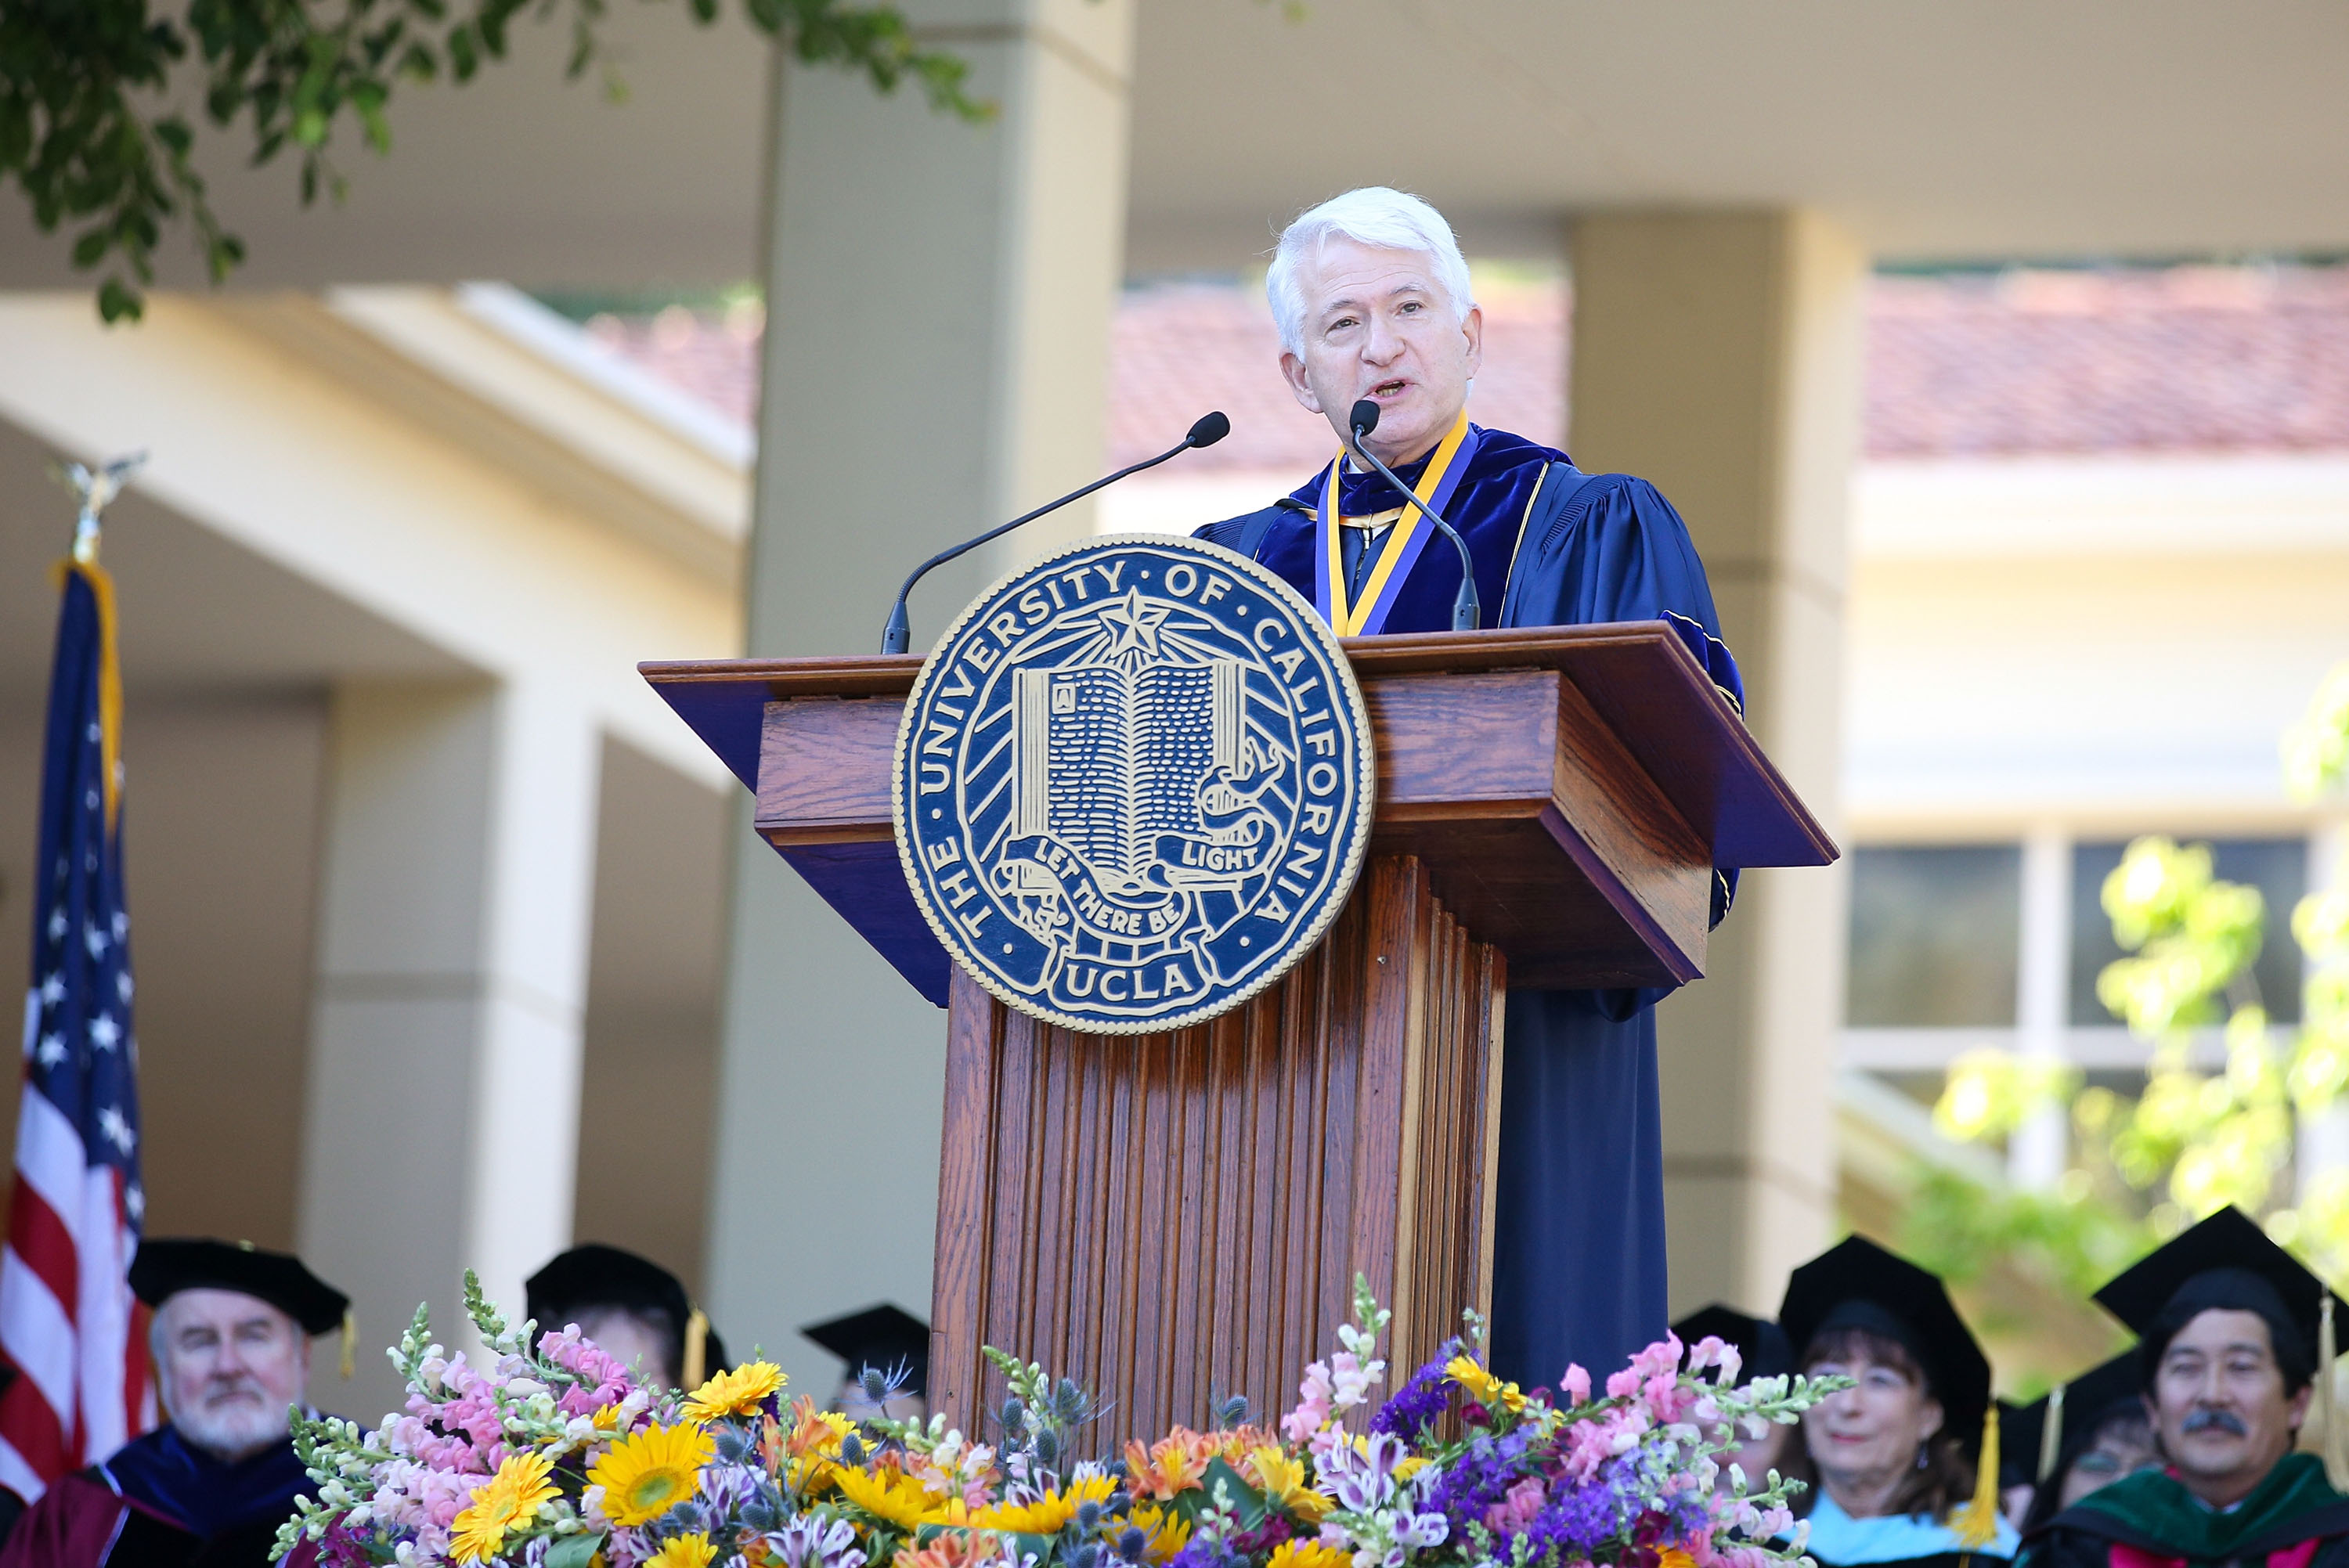 UCLA Chancellor Gene Block is the Pac-12 representative on the NCAA Board of Governors.